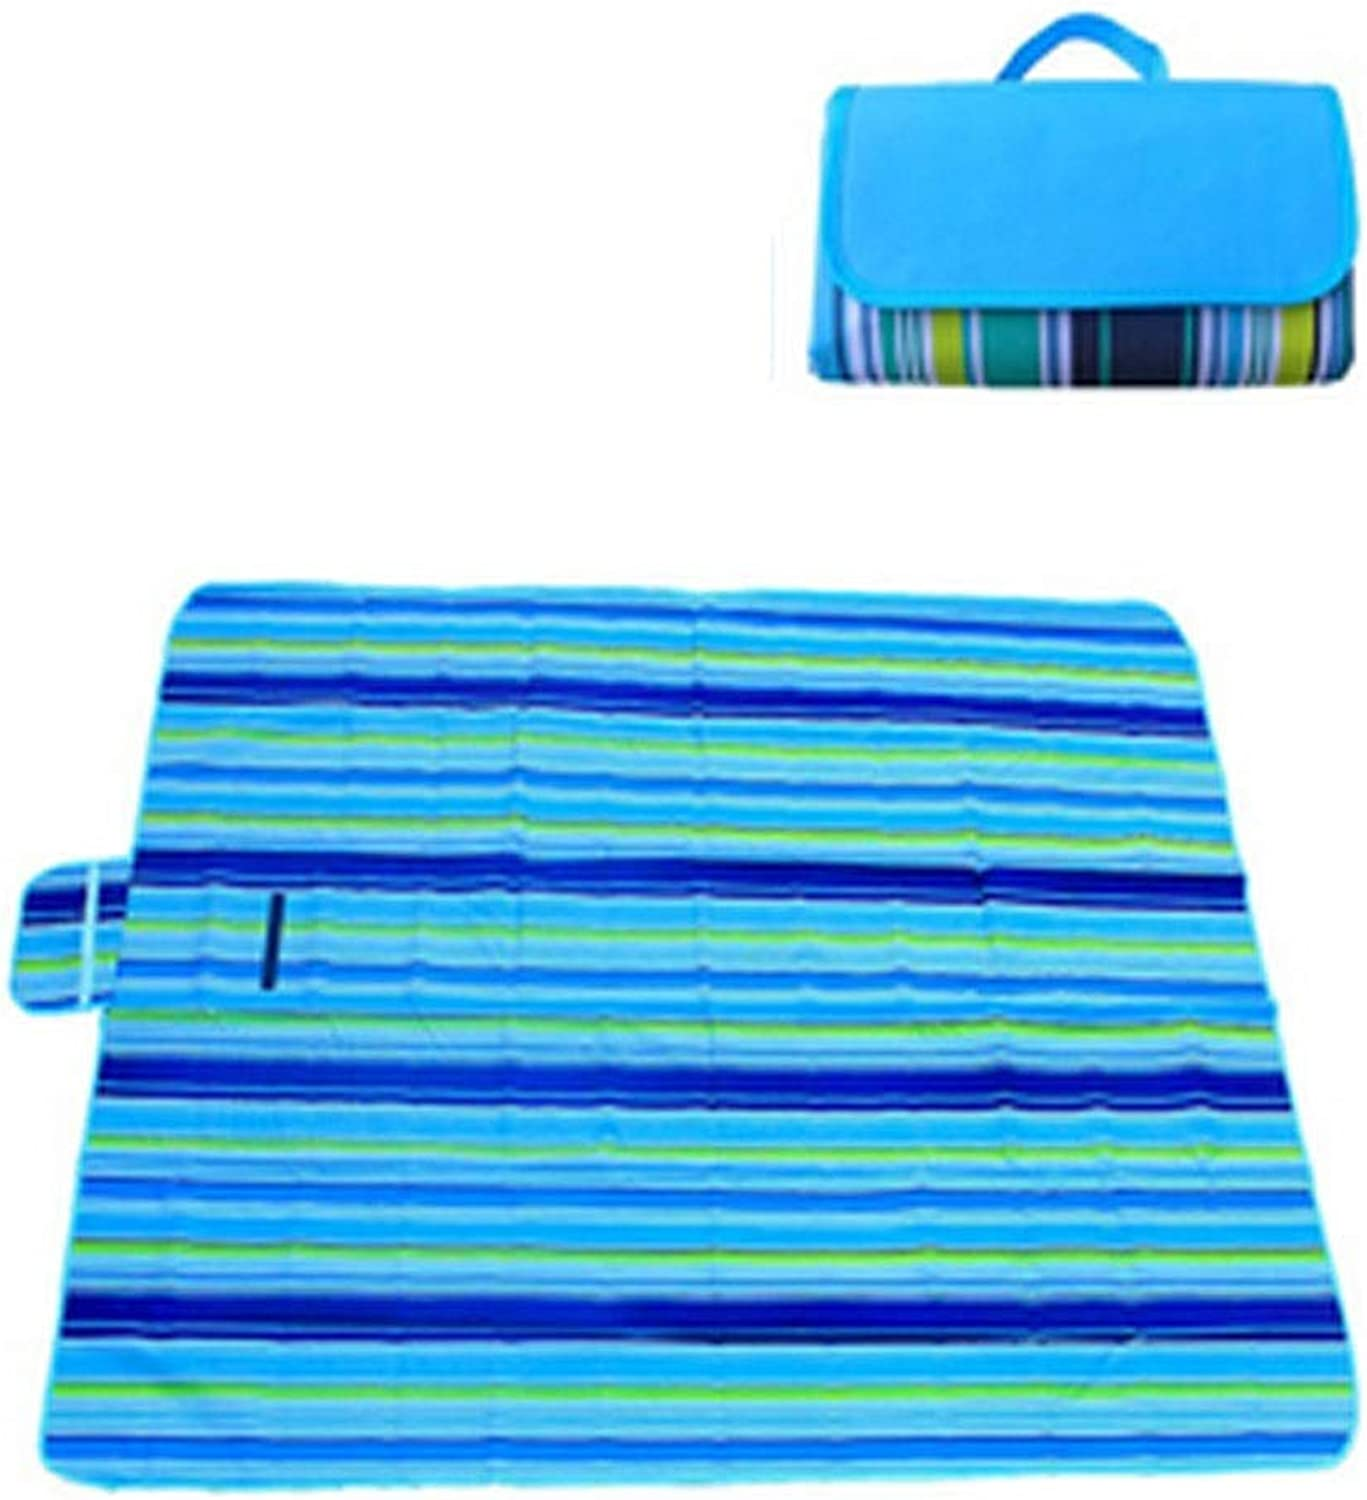 Camping Mat, Outdoor Waterproof Beach Mat, Picnic Mat, 200  145 cm, Suitable for Outdoor Travel, Multicolor Optional (Send Storage Bag) (color   A01, Size   200  145cm)